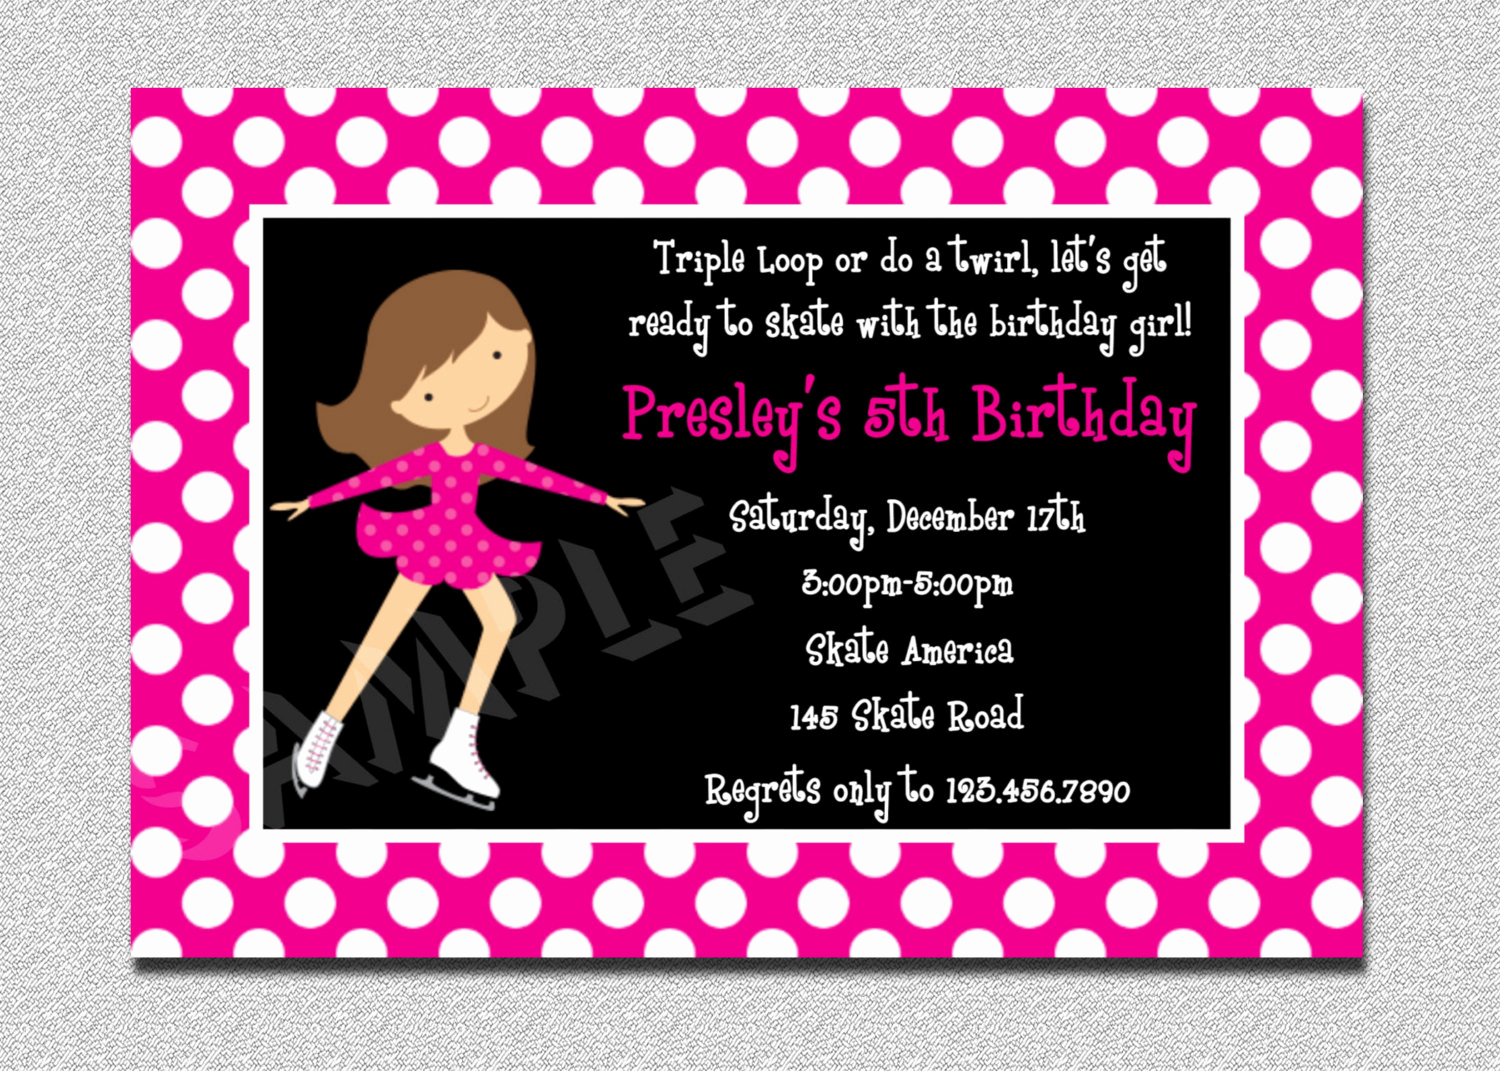 Ice Skate Party Invitation Inspirational Ice Skating Birthday Invitations Ice Skating Party